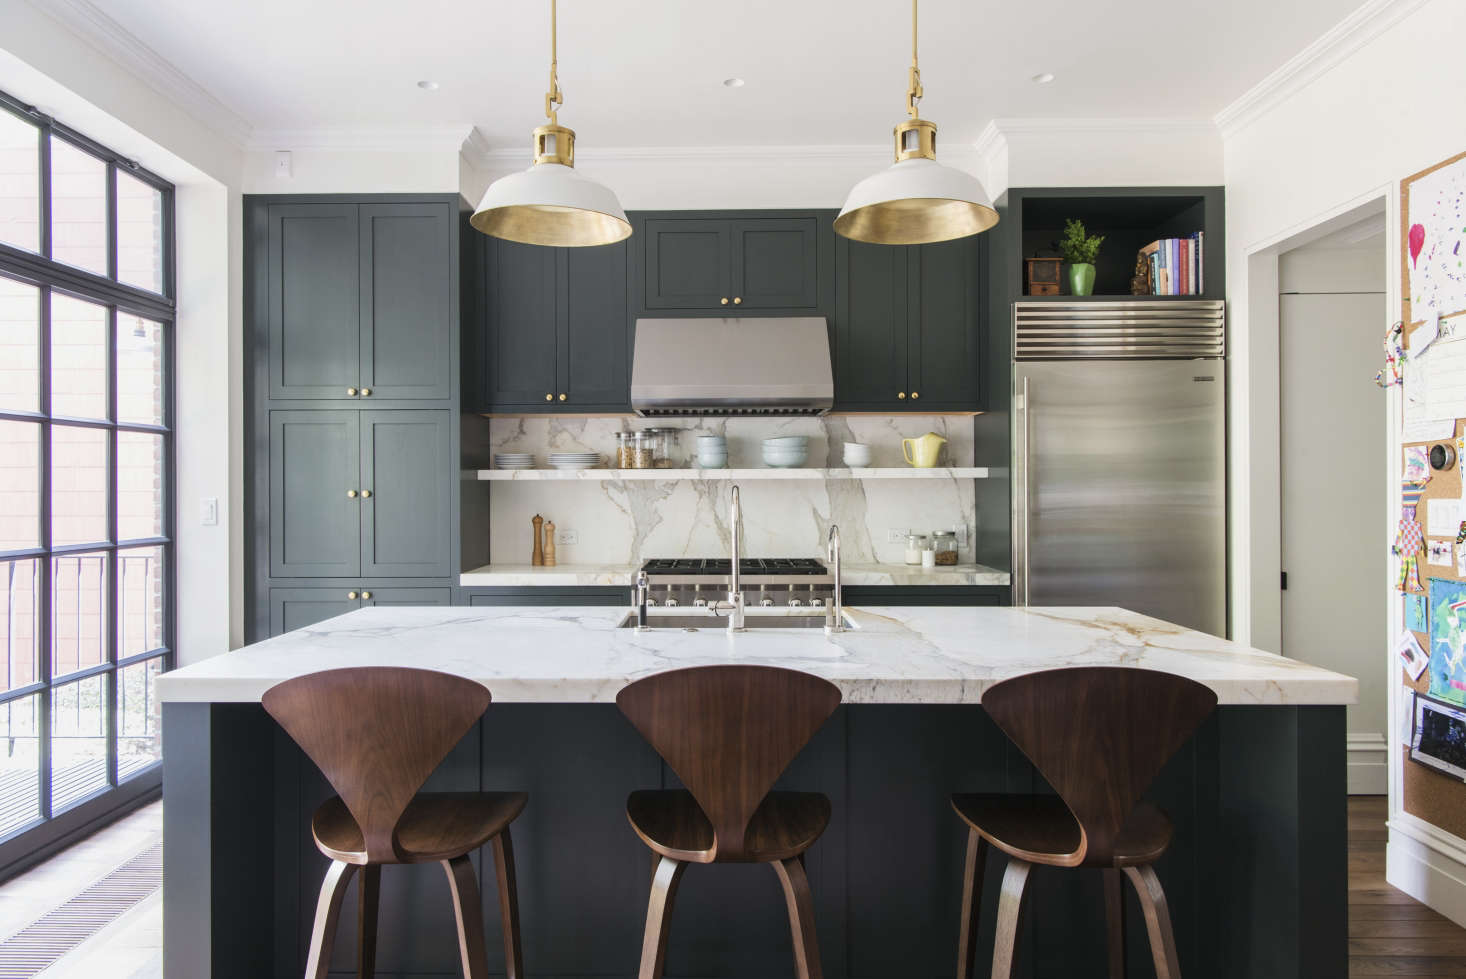 green kitchen cabinets real wood costco trend alert 10 favorite time tested dark kitchens remodelista in a brooklyn townhouse gutted and remodeled by architect elizabeth roberts for young family